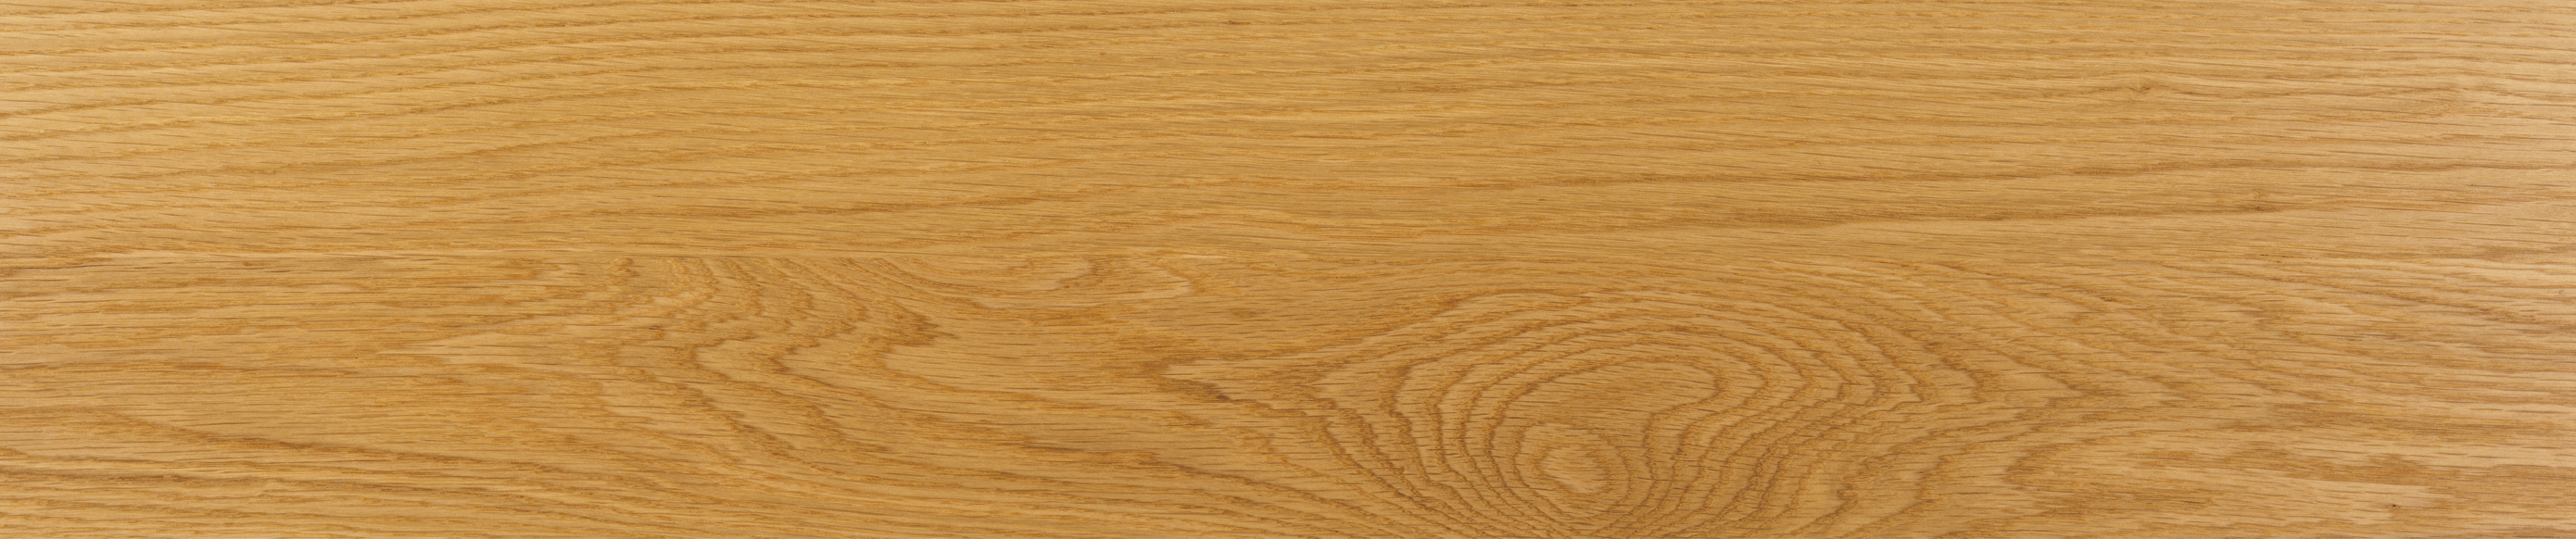 Roble imagrupo for Parquet madera natural